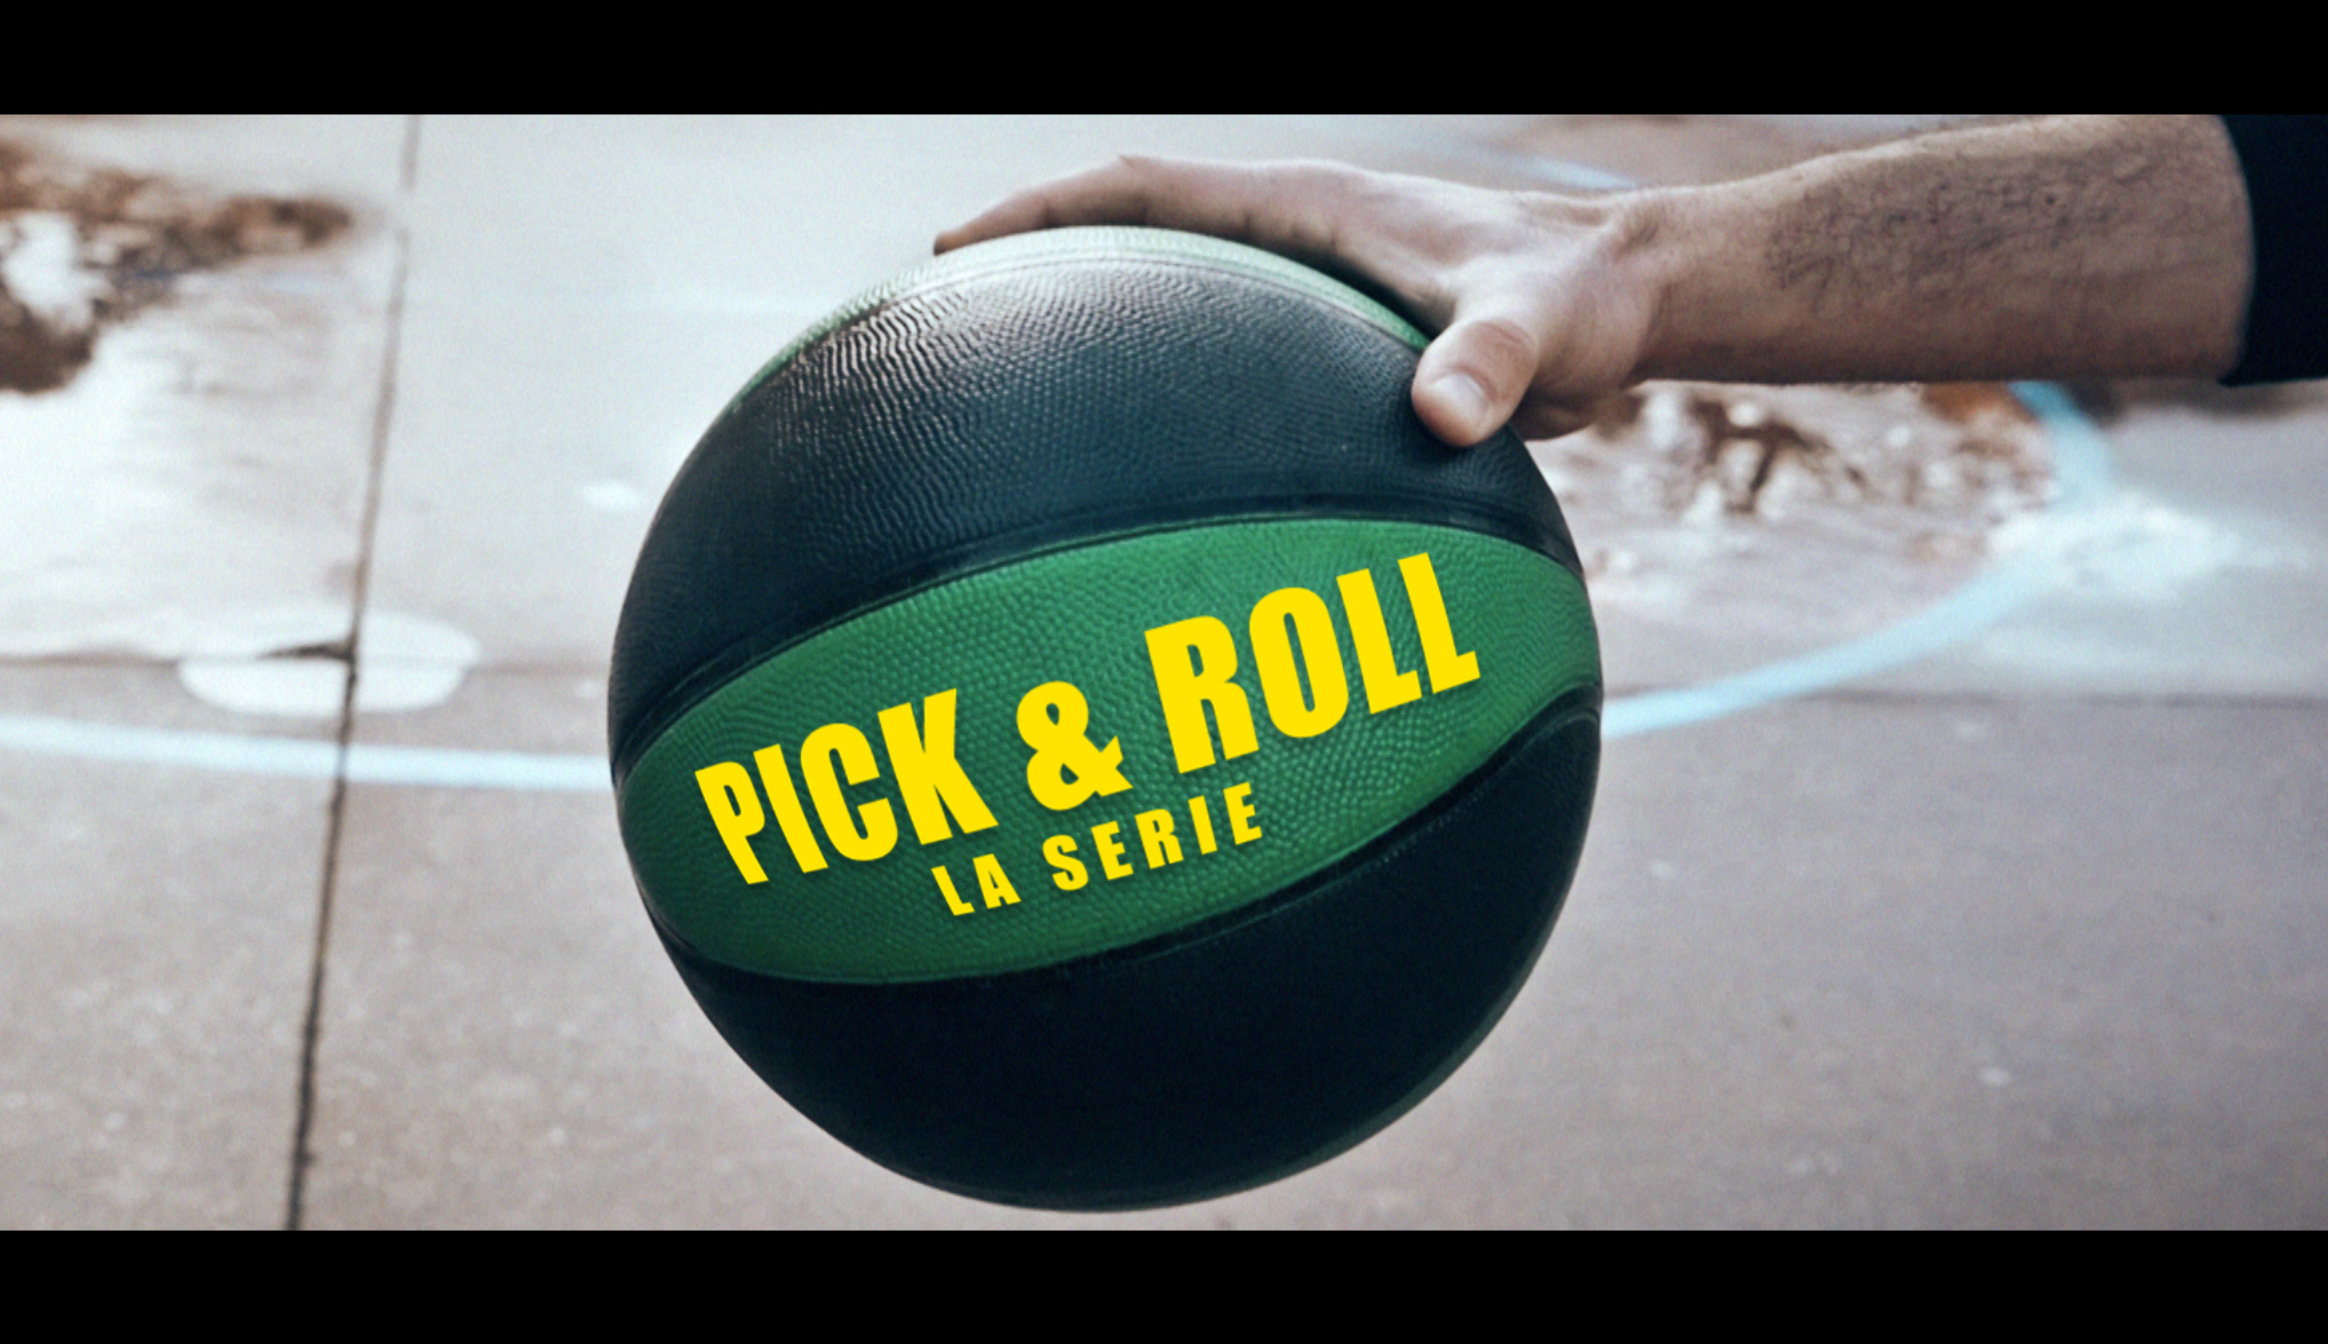 Roma Web Fest - PICK AND ROLL